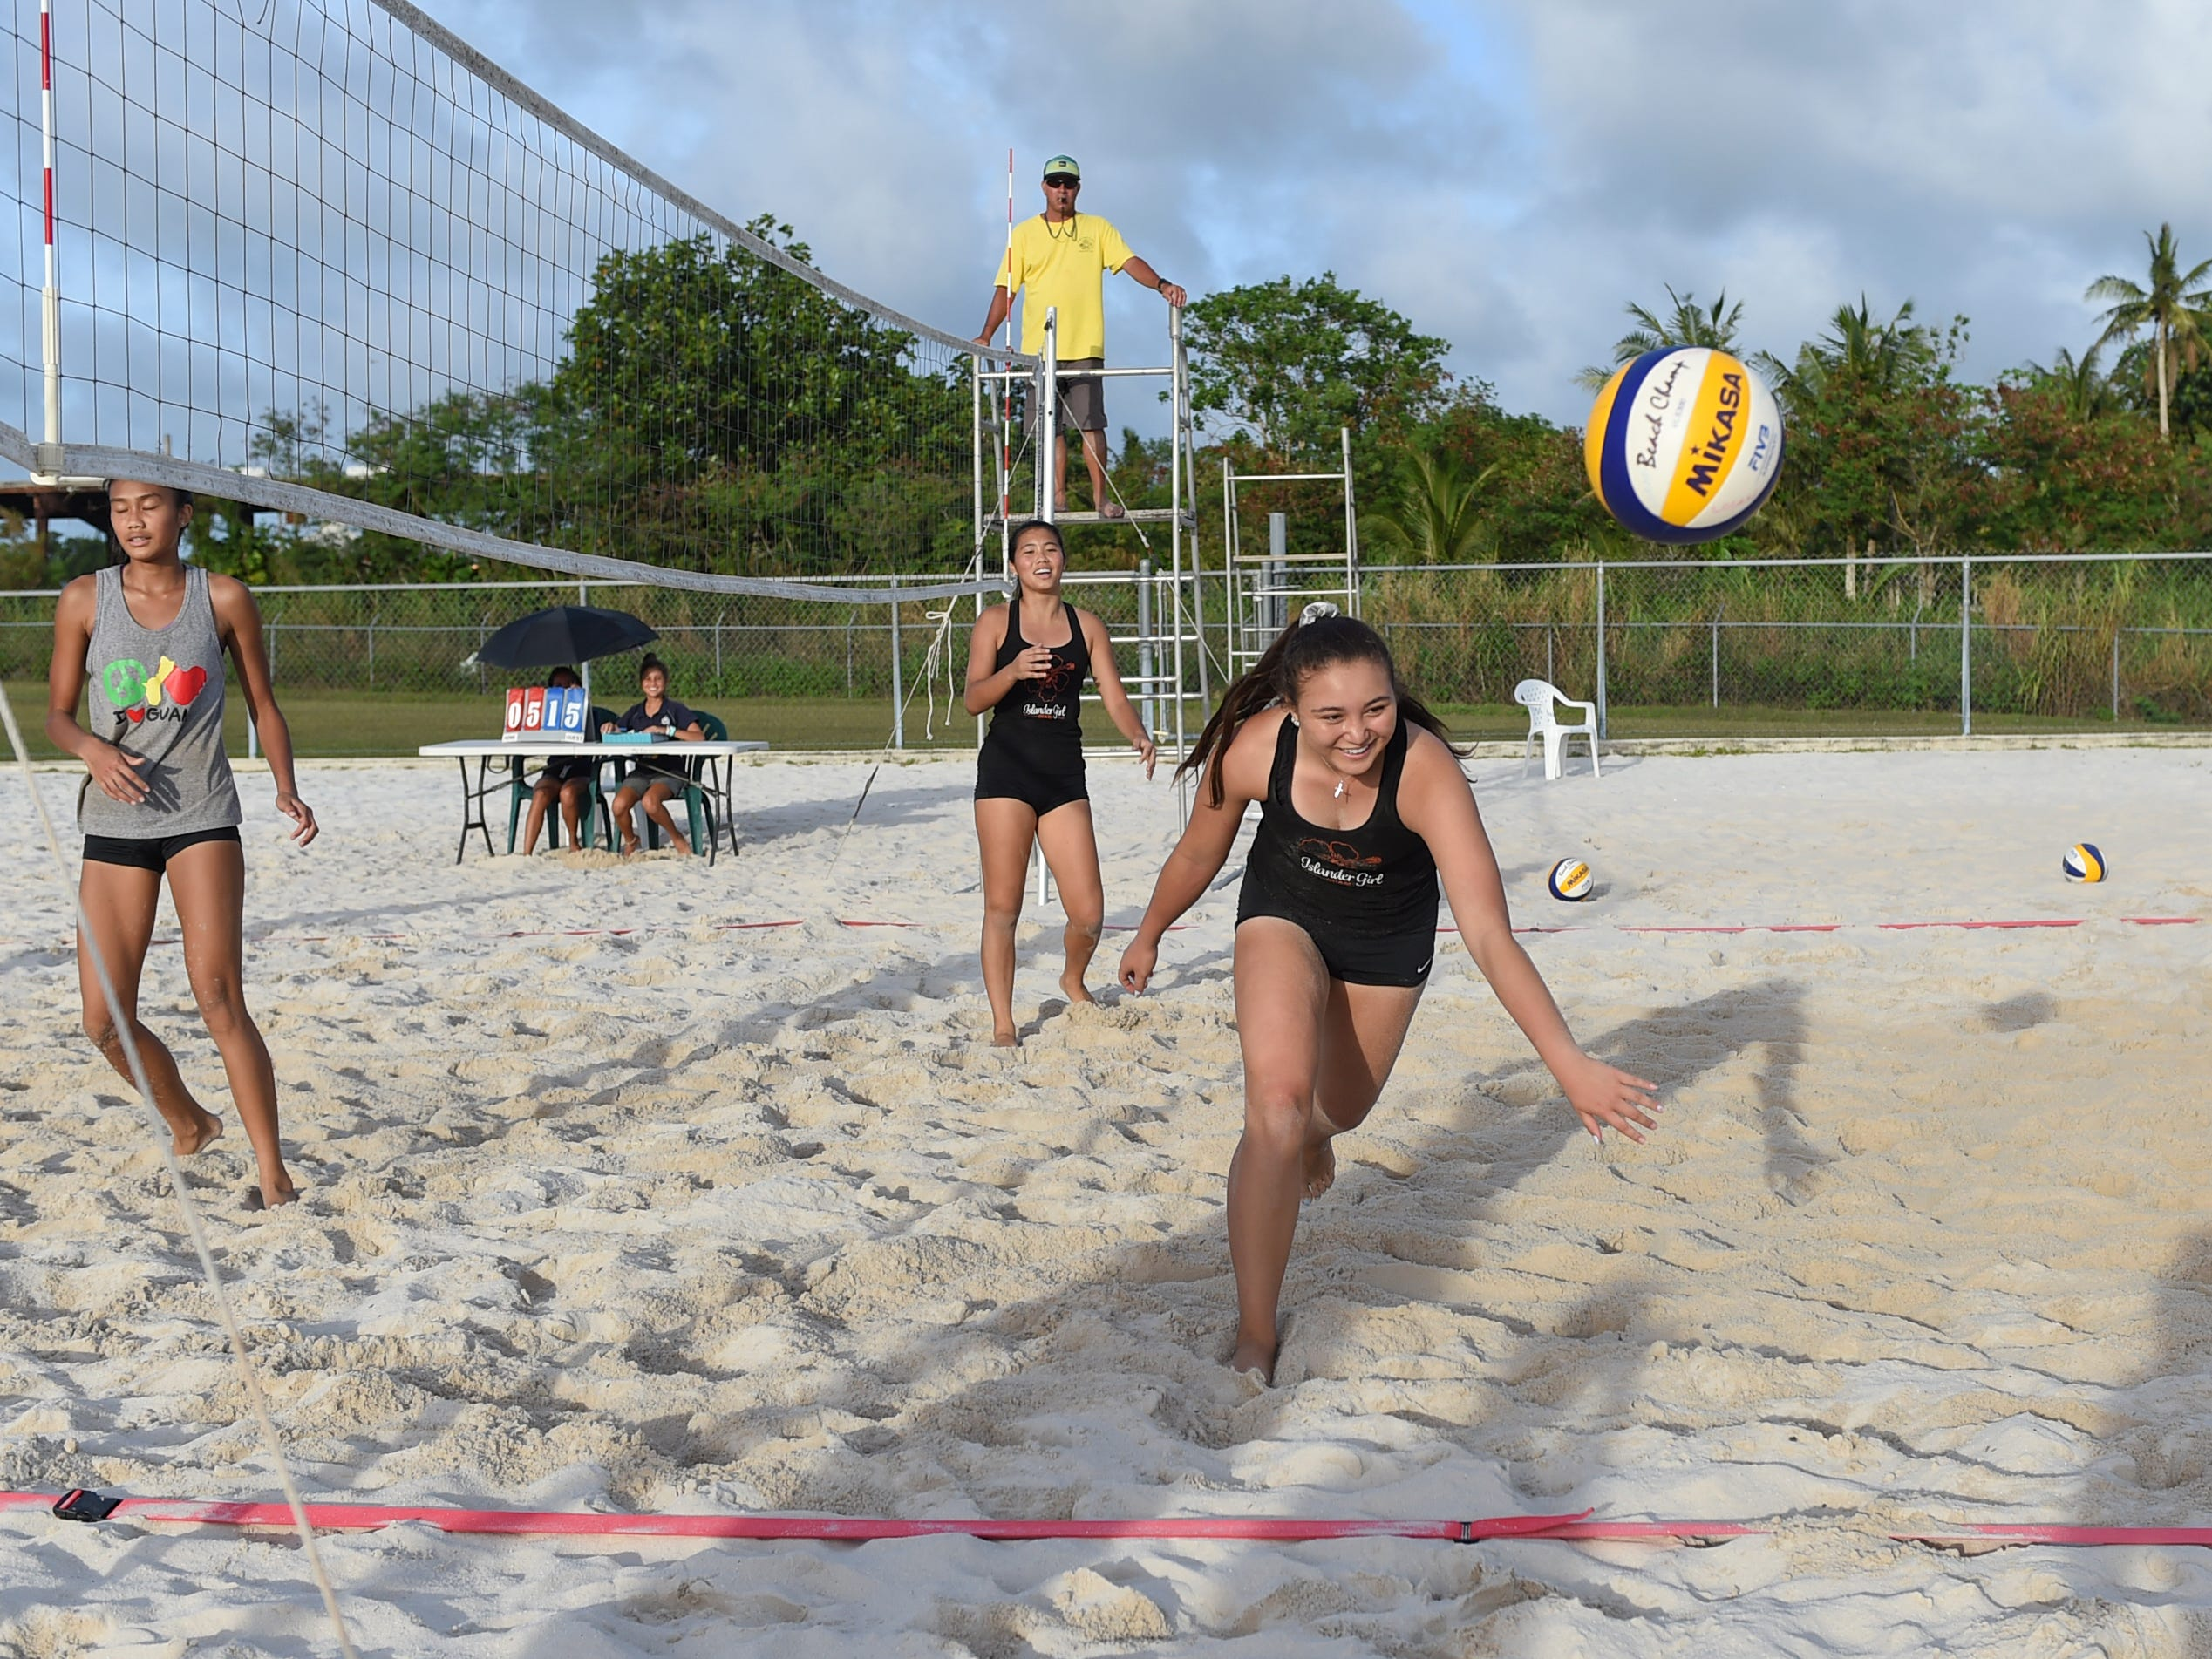 St. John's player Tylee Shepherd loses the ball on a play during the IIAAG Beach Volleyball championship game at the Guam Football Association National Training Center in Dededo, March 12, 2019.